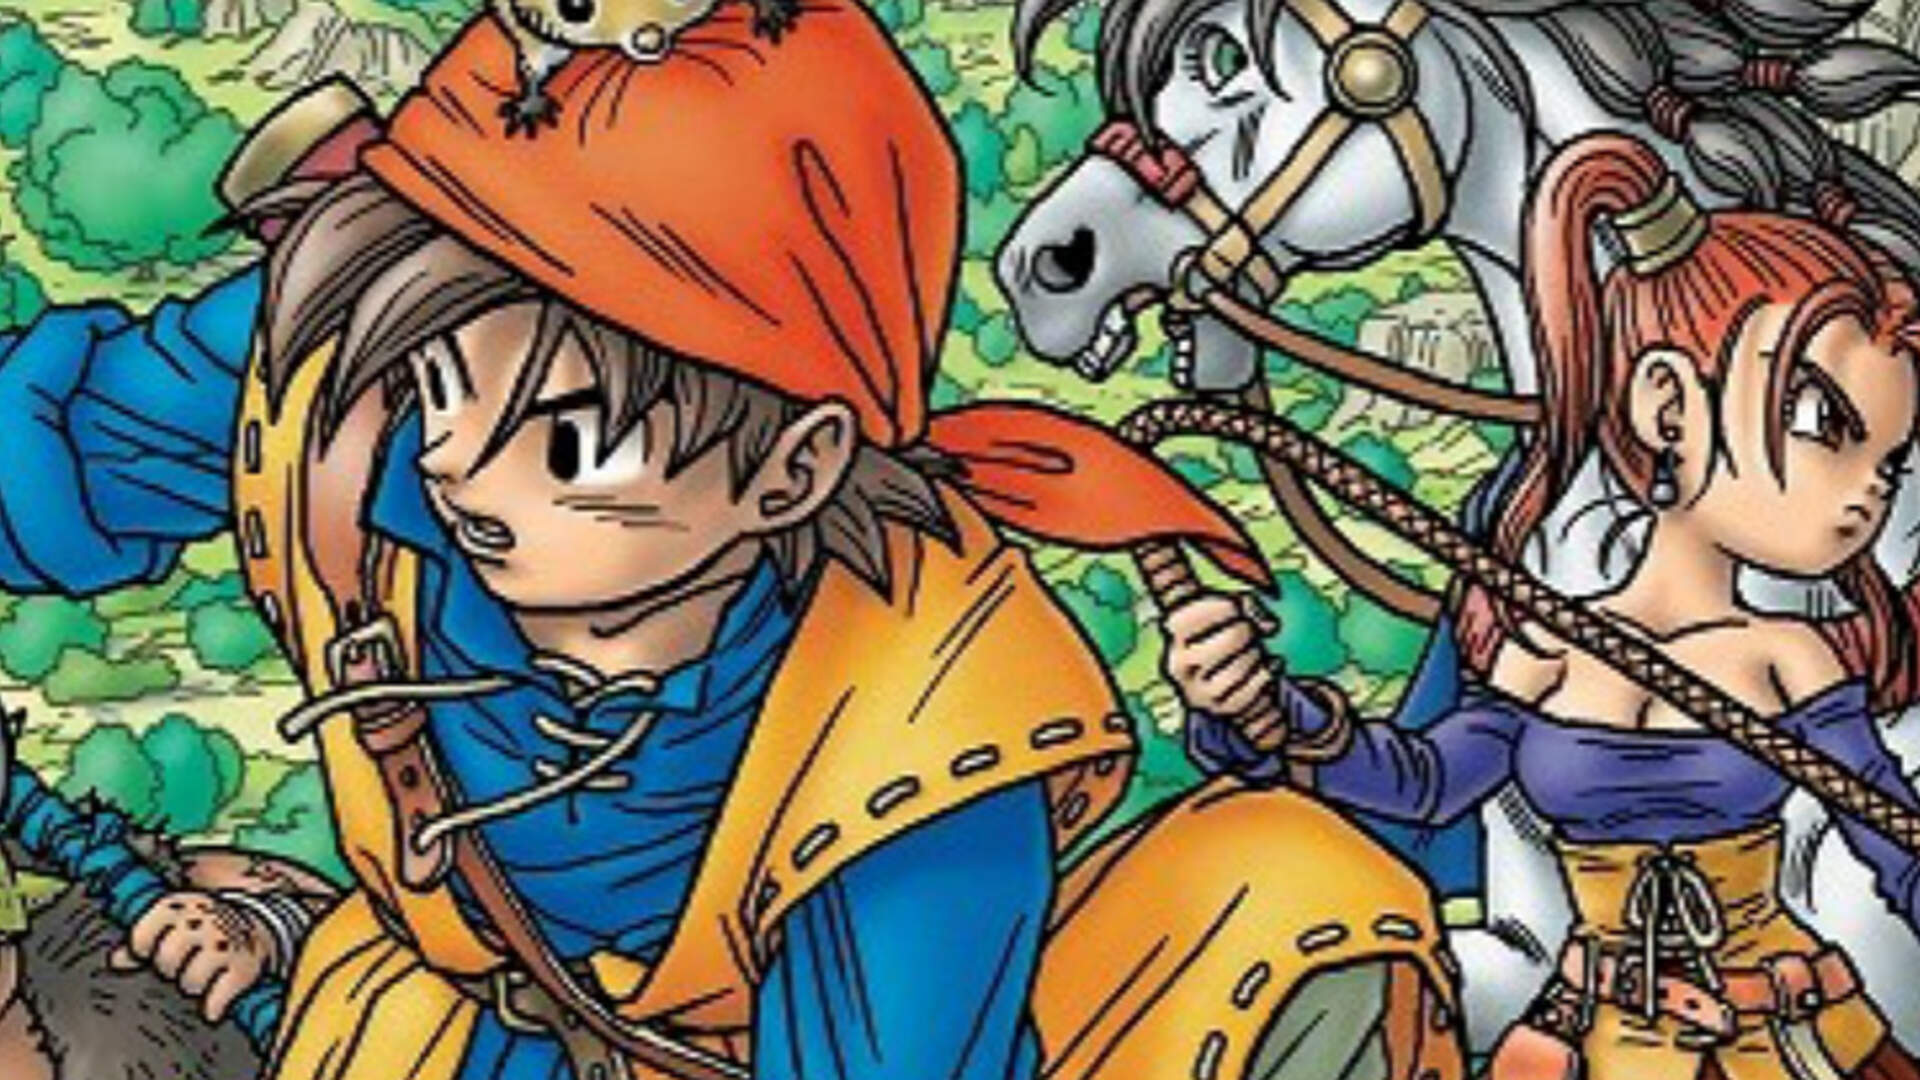 Dragon Quest VIII Comes to 3DS on January 20